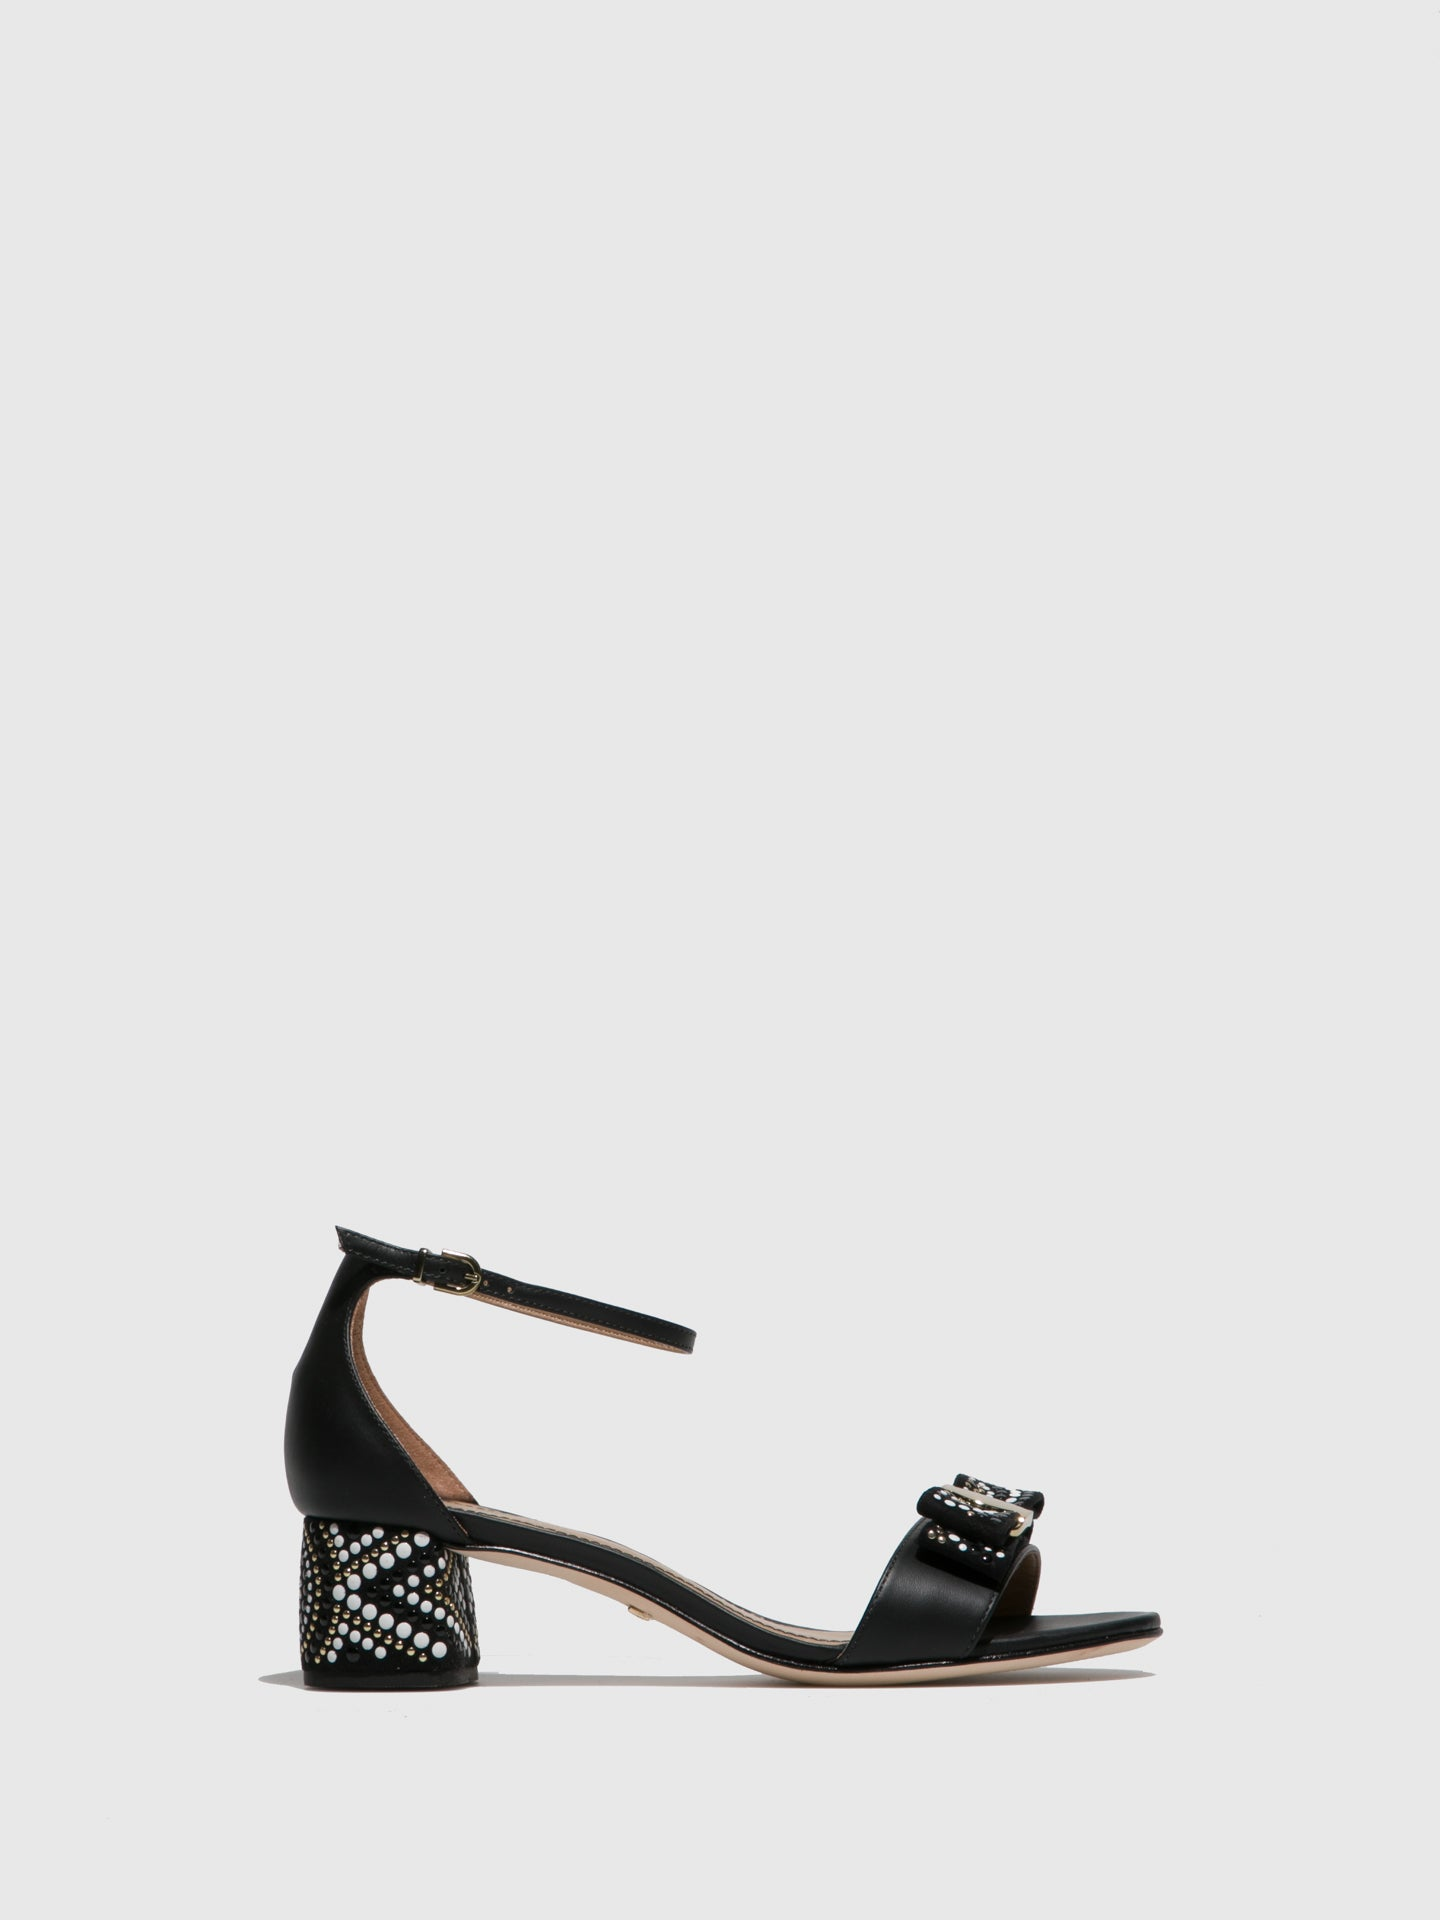 PARODI PASSION Black Ankle Strap Sandals